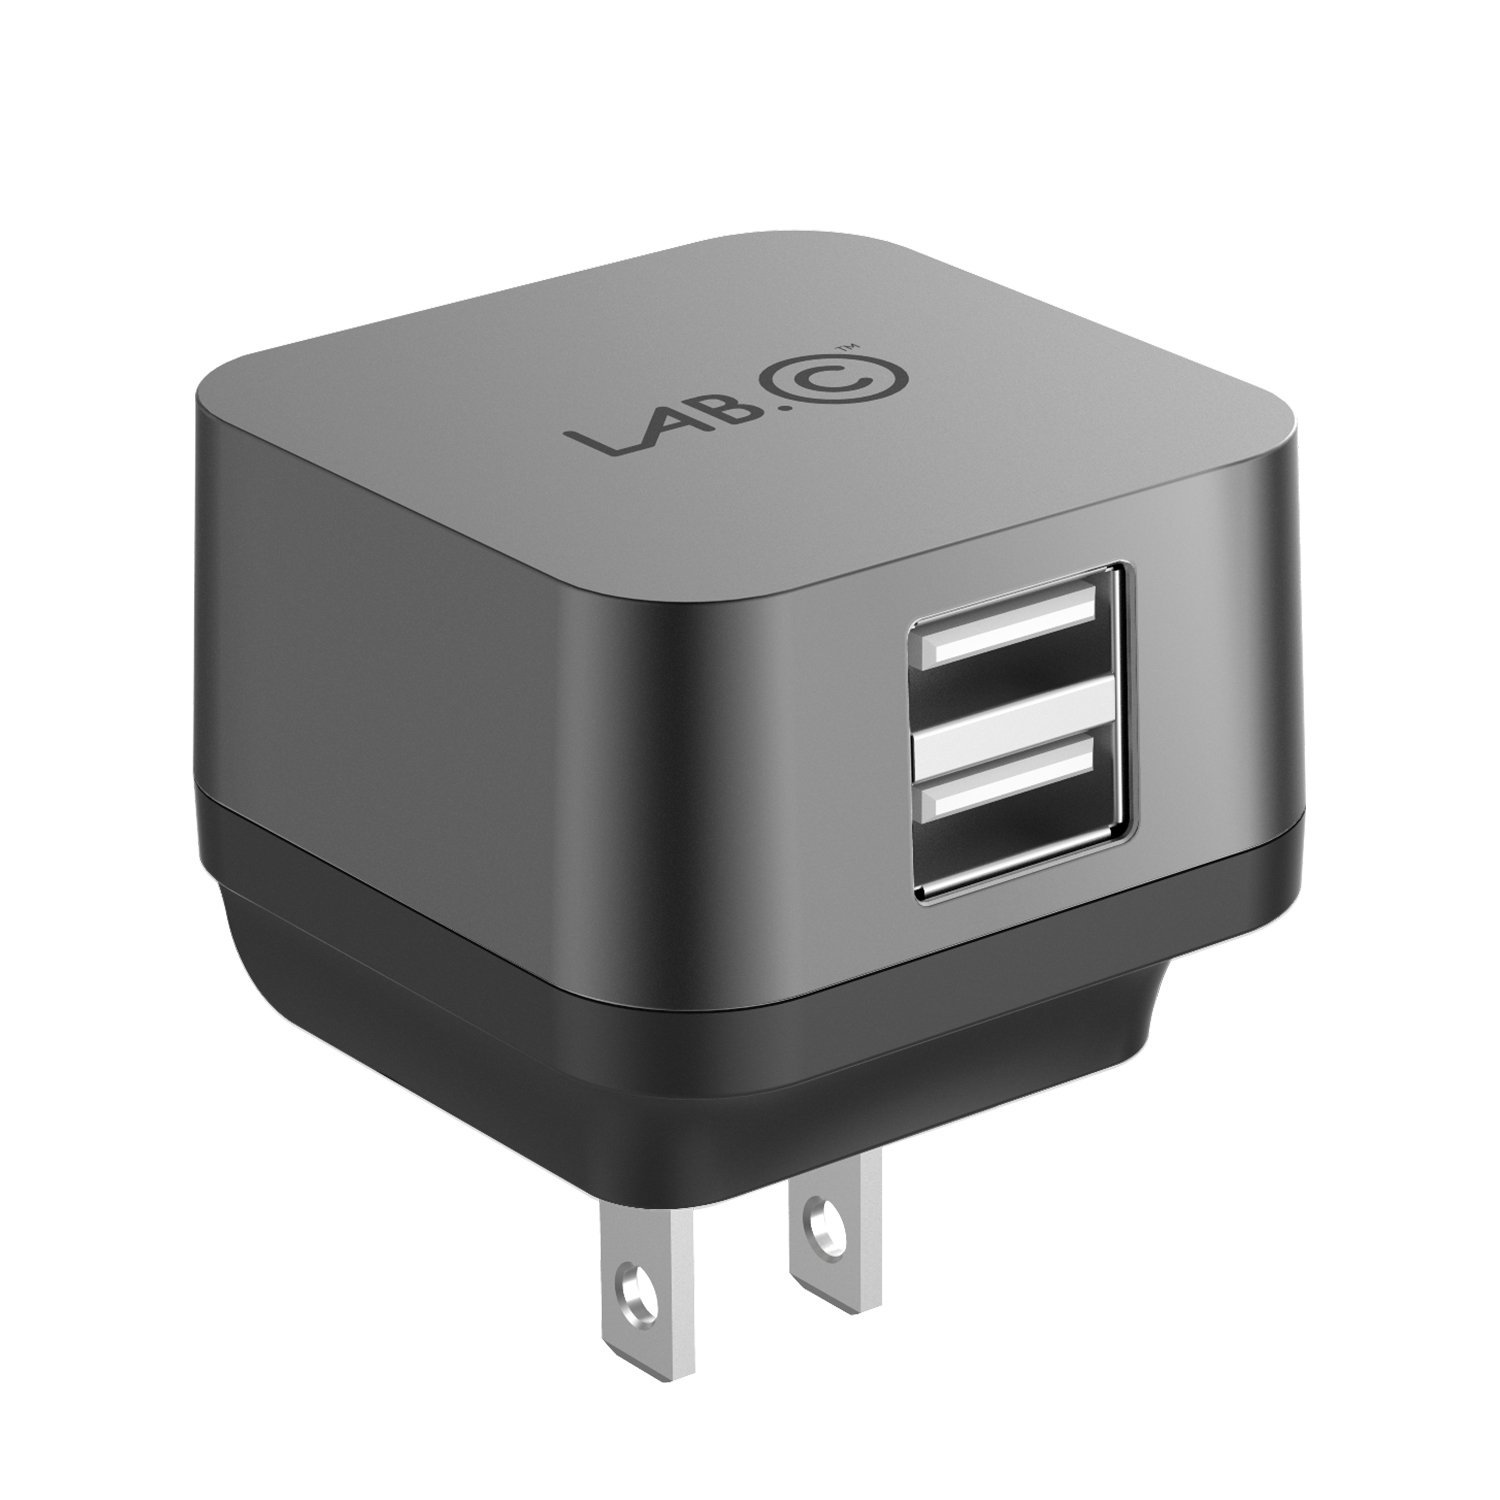 X2, 2Port USB Wall Charger, Rapid charging [Smart IC Technology][2.4A] 2-Port Foldable Travel Wall Charger with Quick charge for Apple, Samsung, Android Devices & More(LABC-593-GR)